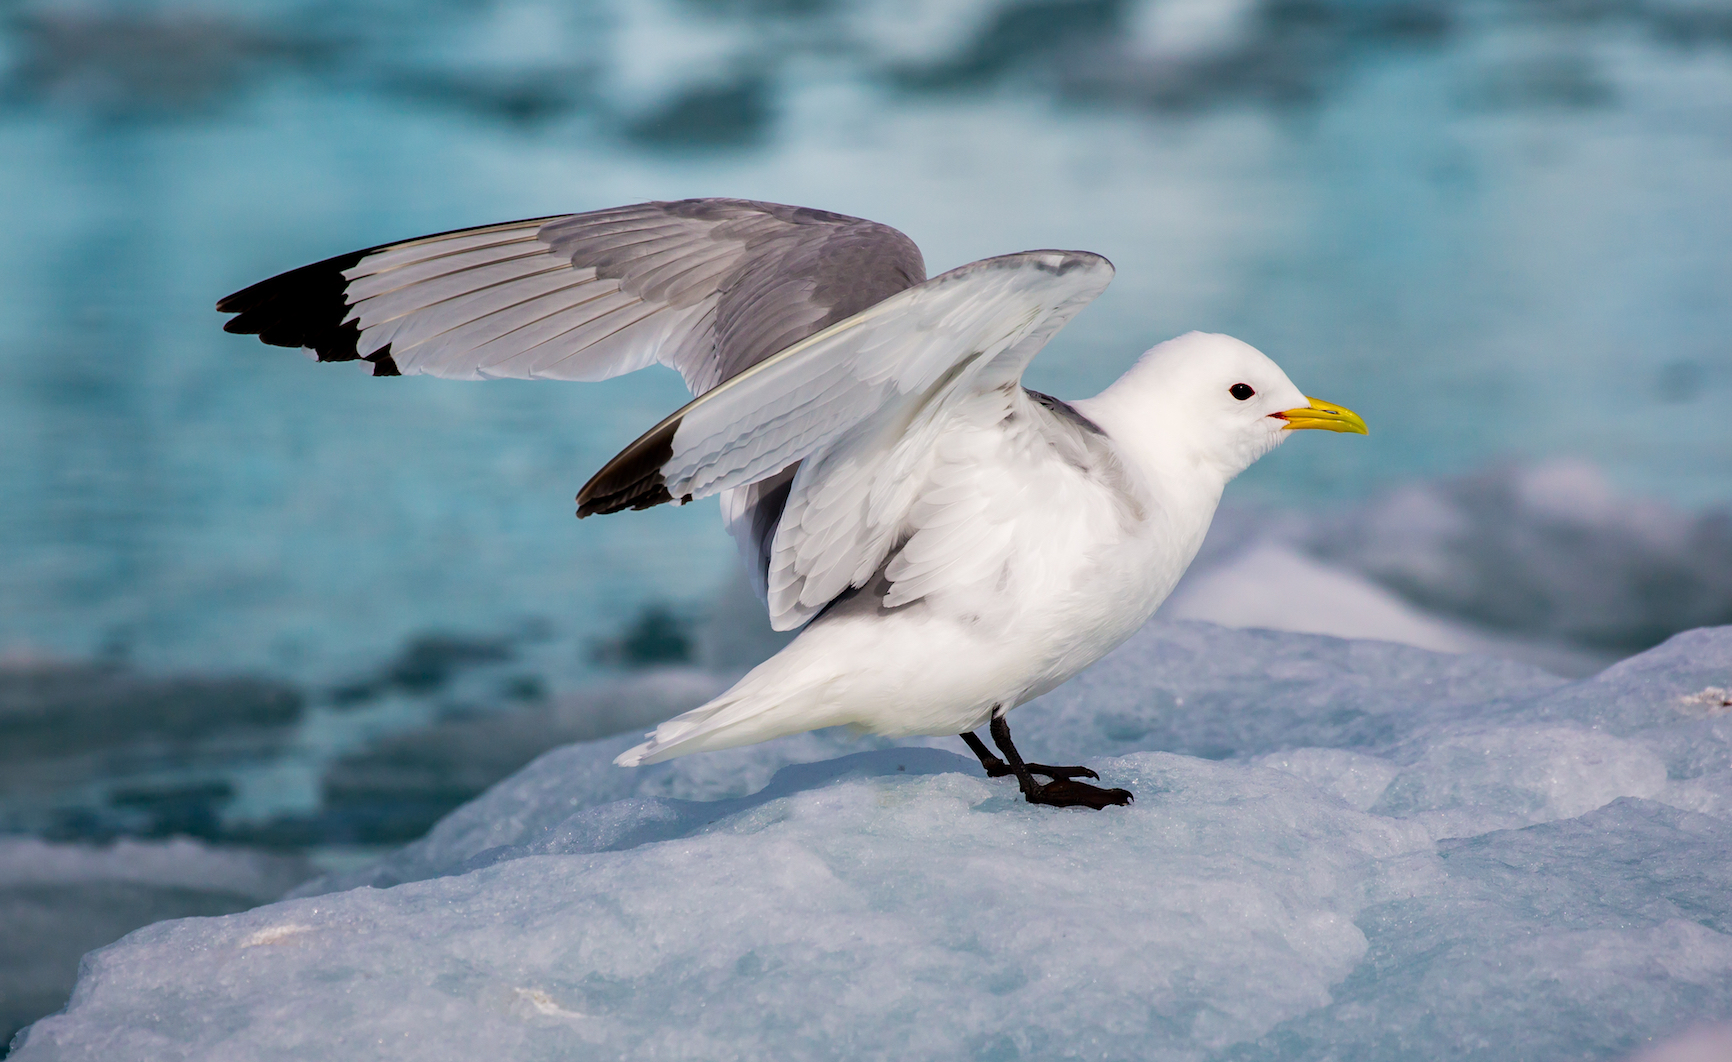 Researchers have found evidence that the warming ocean is both directly and indirectly affecting seabird populations in Alaska.